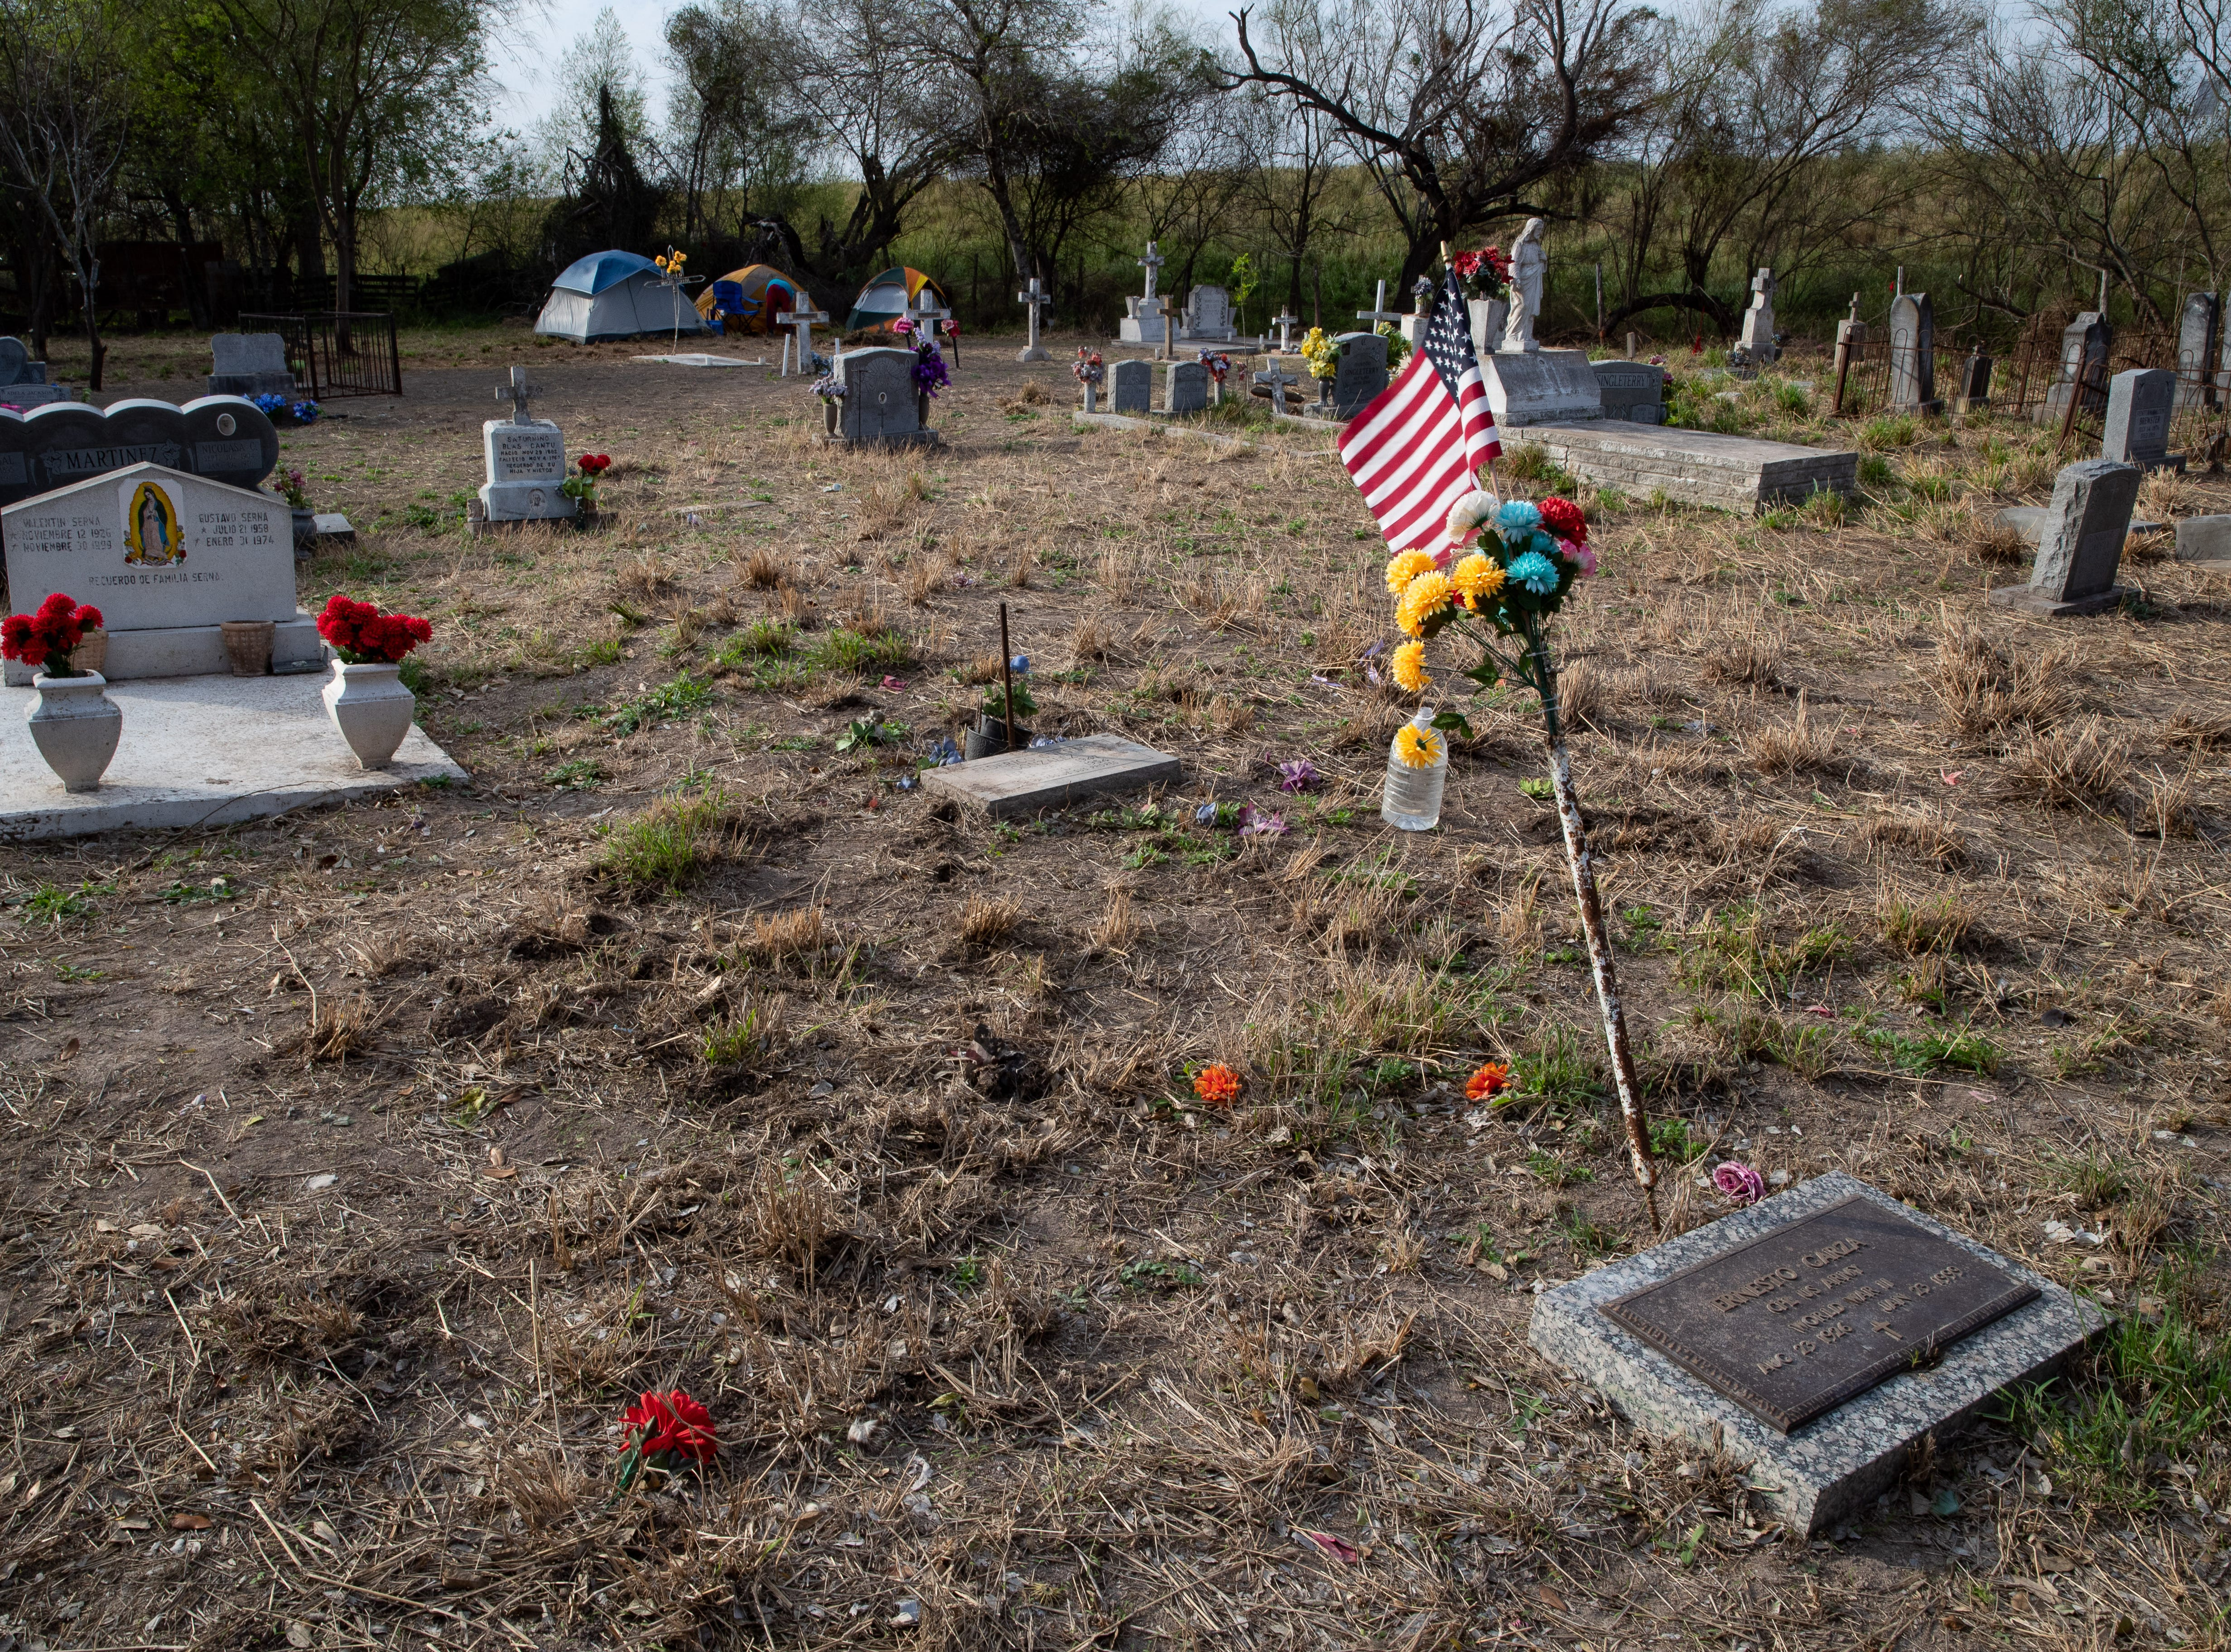 The Eli Jackson Cemetery in San Juan, Texas on Wednesday, Feb. 6, 2019. The soon-to-be-constructed border wall will be built on the levee bordering the cemetery, placing the cemetery on the Mexico side of the wall. A group of people have set up a camp at the cemetery in protest of the wall construction.